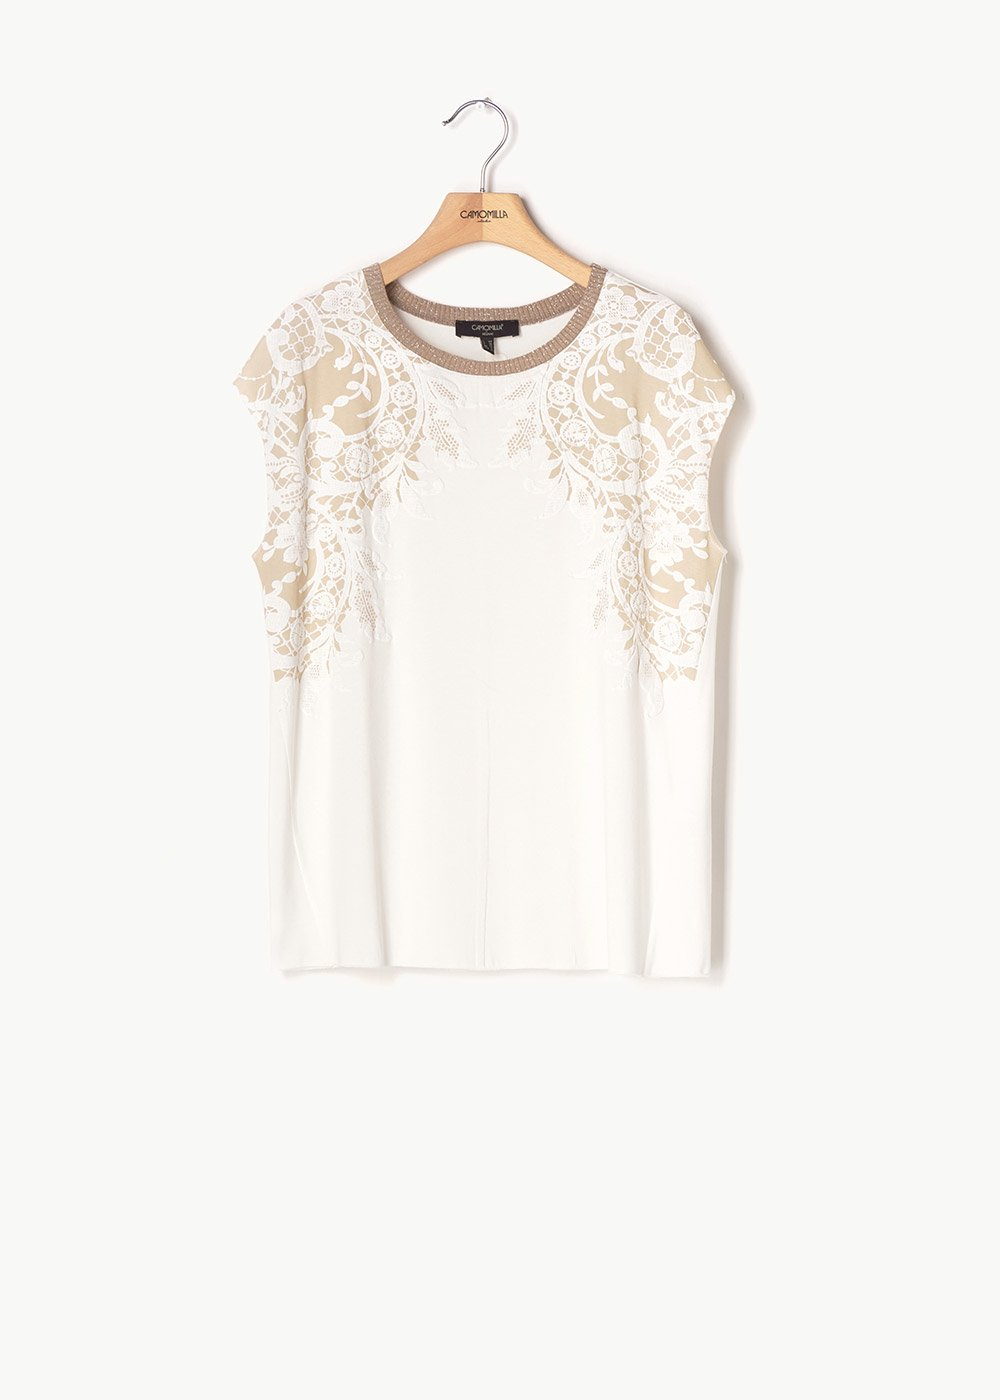 Sheila T-shirt with embroidery of flowers - White / Beige Fantasia - Woman